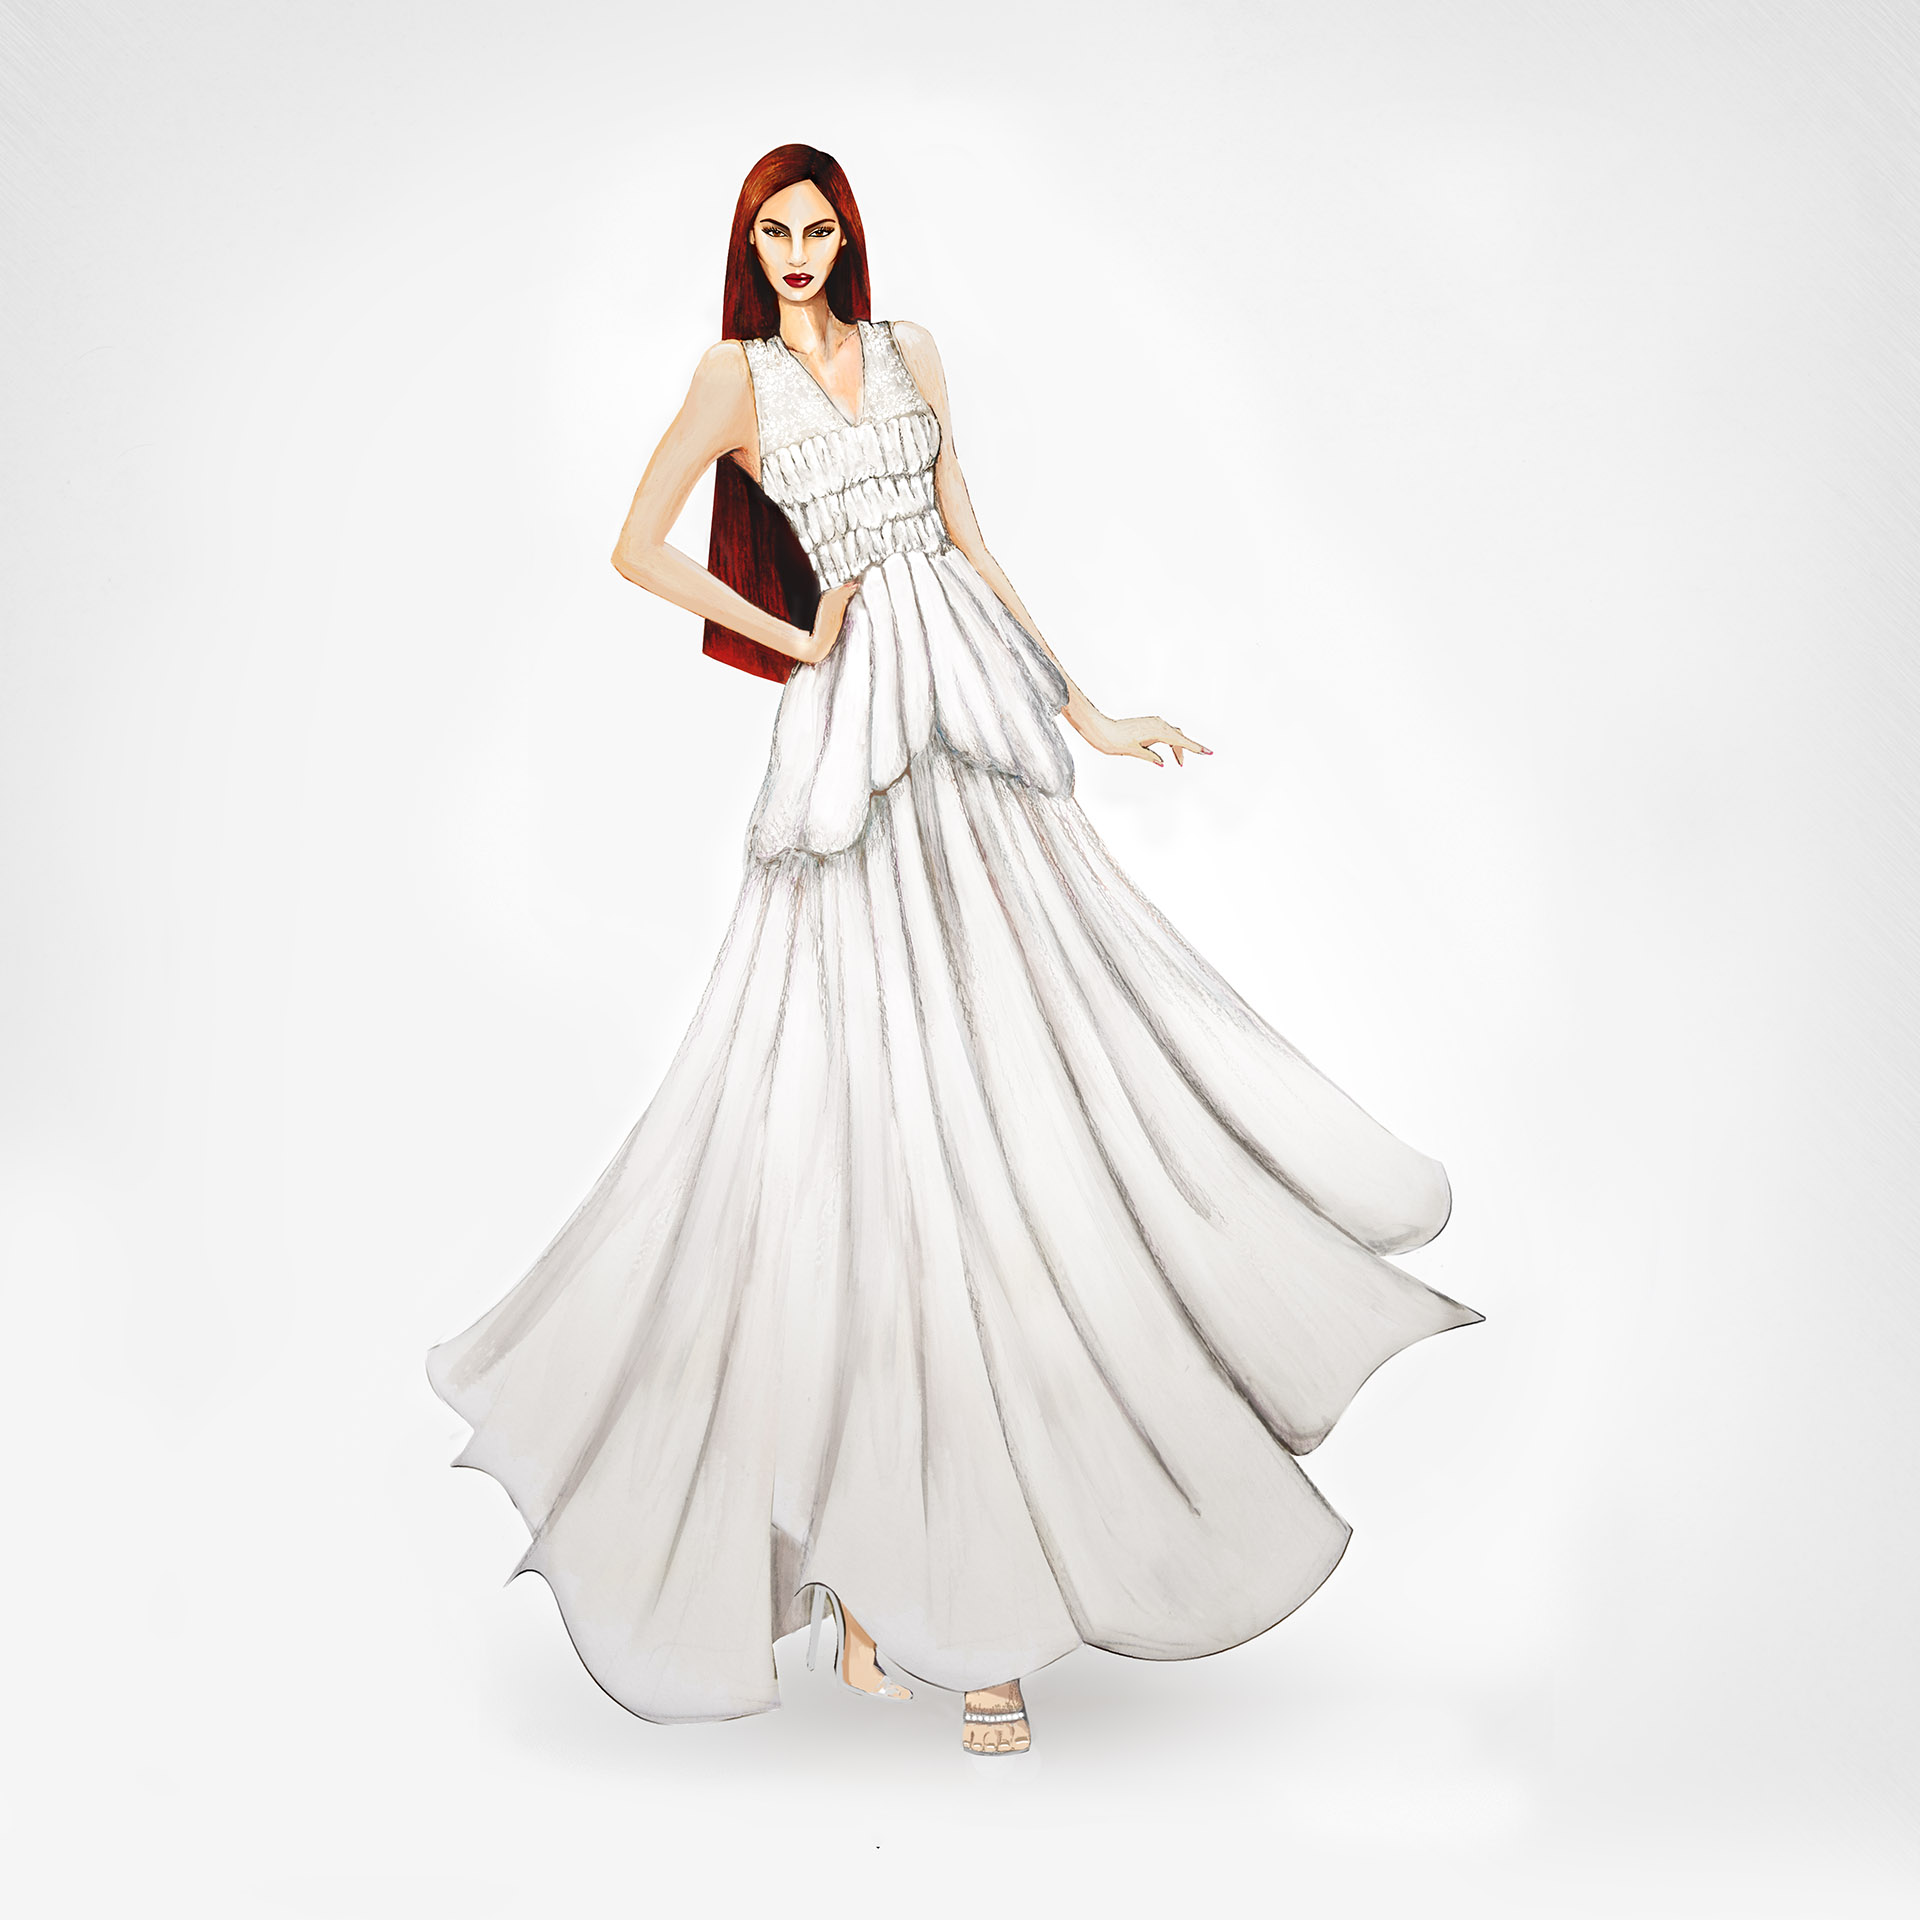 03 - Wedding Dress  - 1